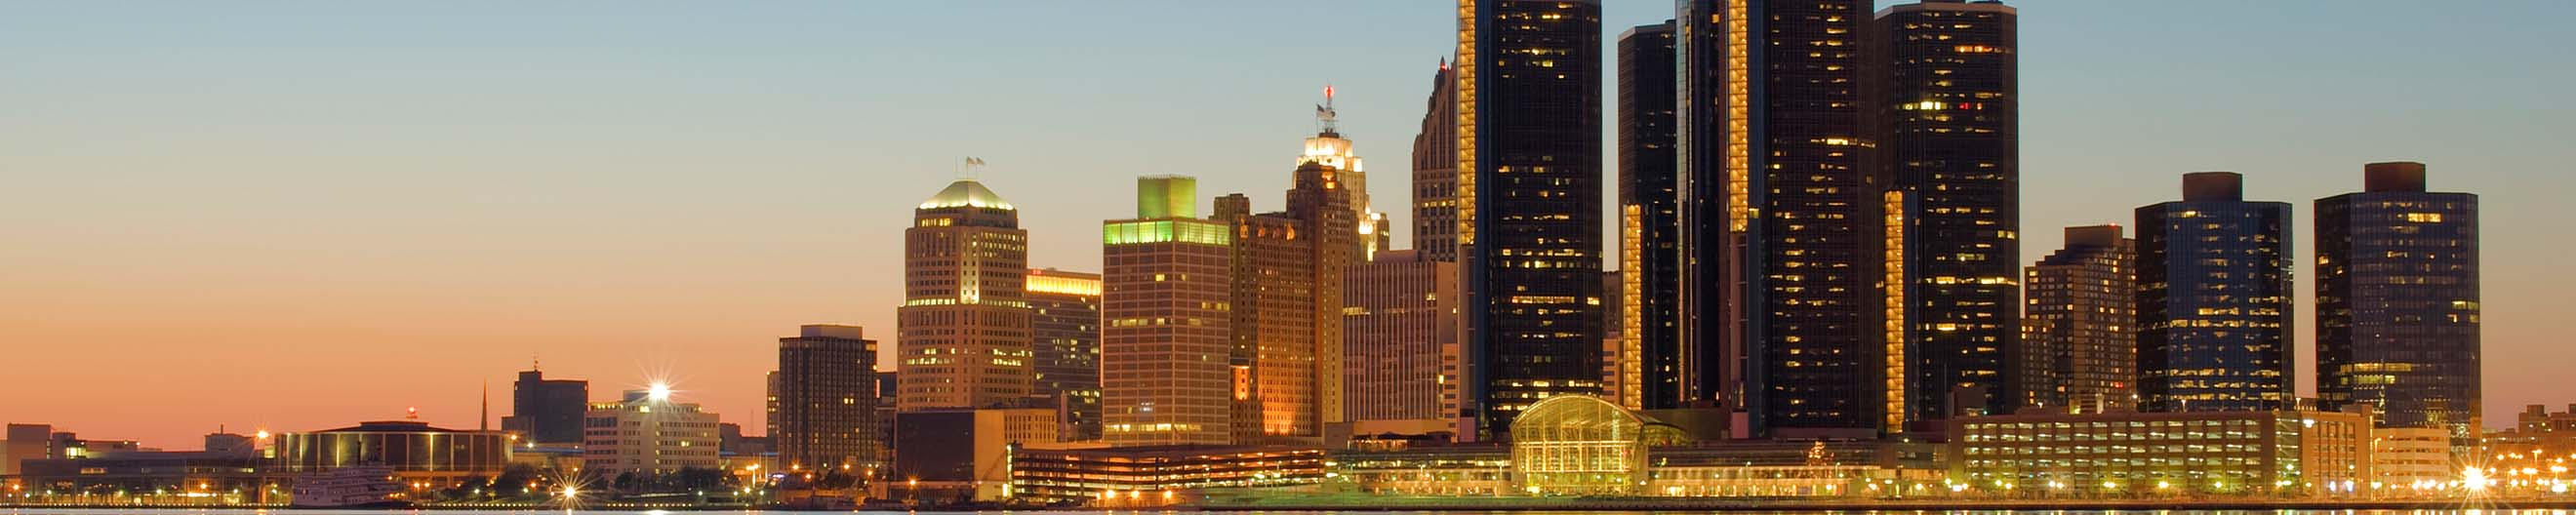 Detroit Spa Hotels & Resorts From $64 - Spa Hotels in Detroit ...